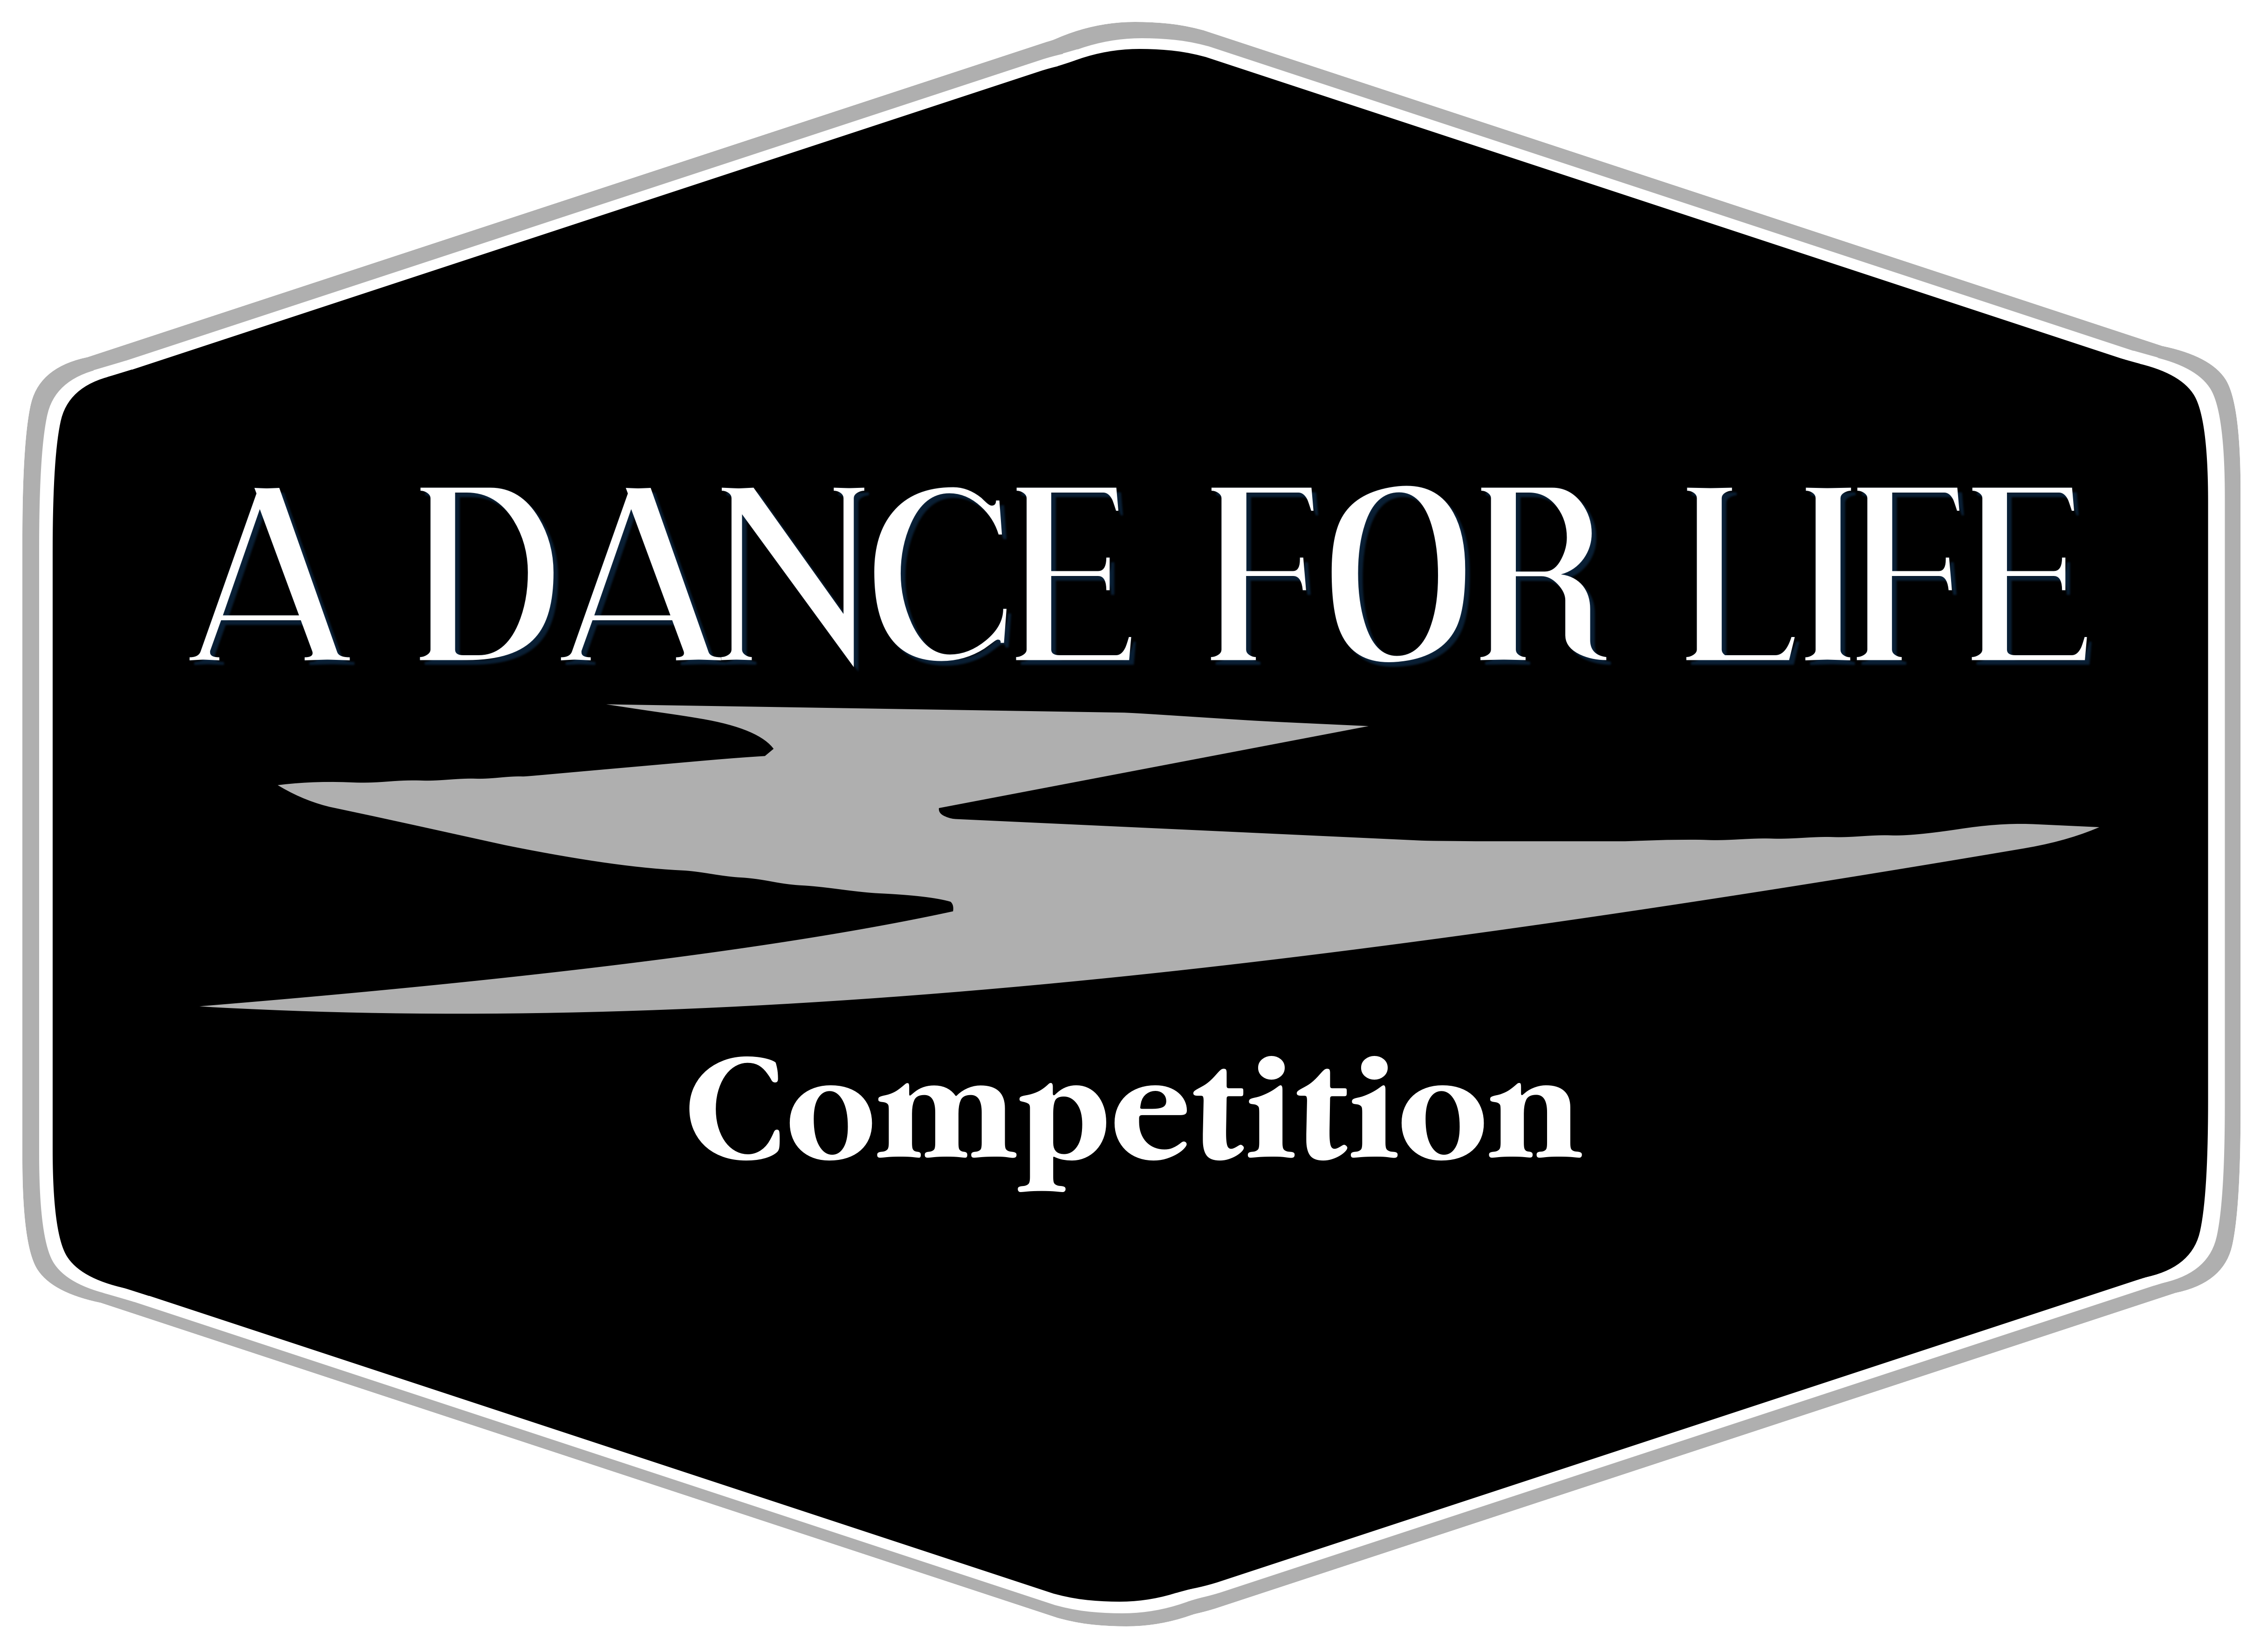 a dance for life logo transp